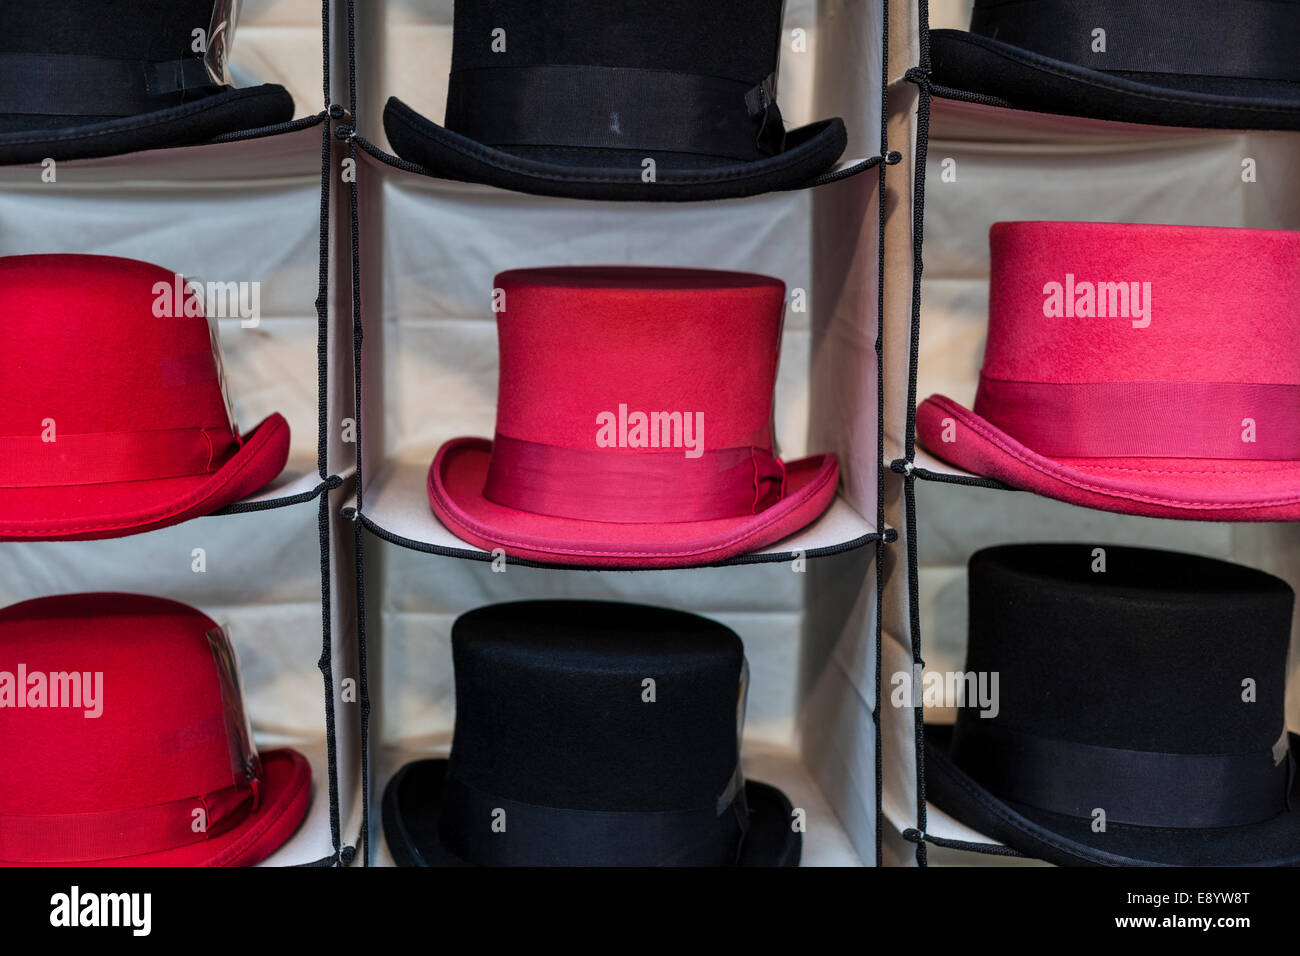 Colourful Hats on Display and for Sale - Stock Image